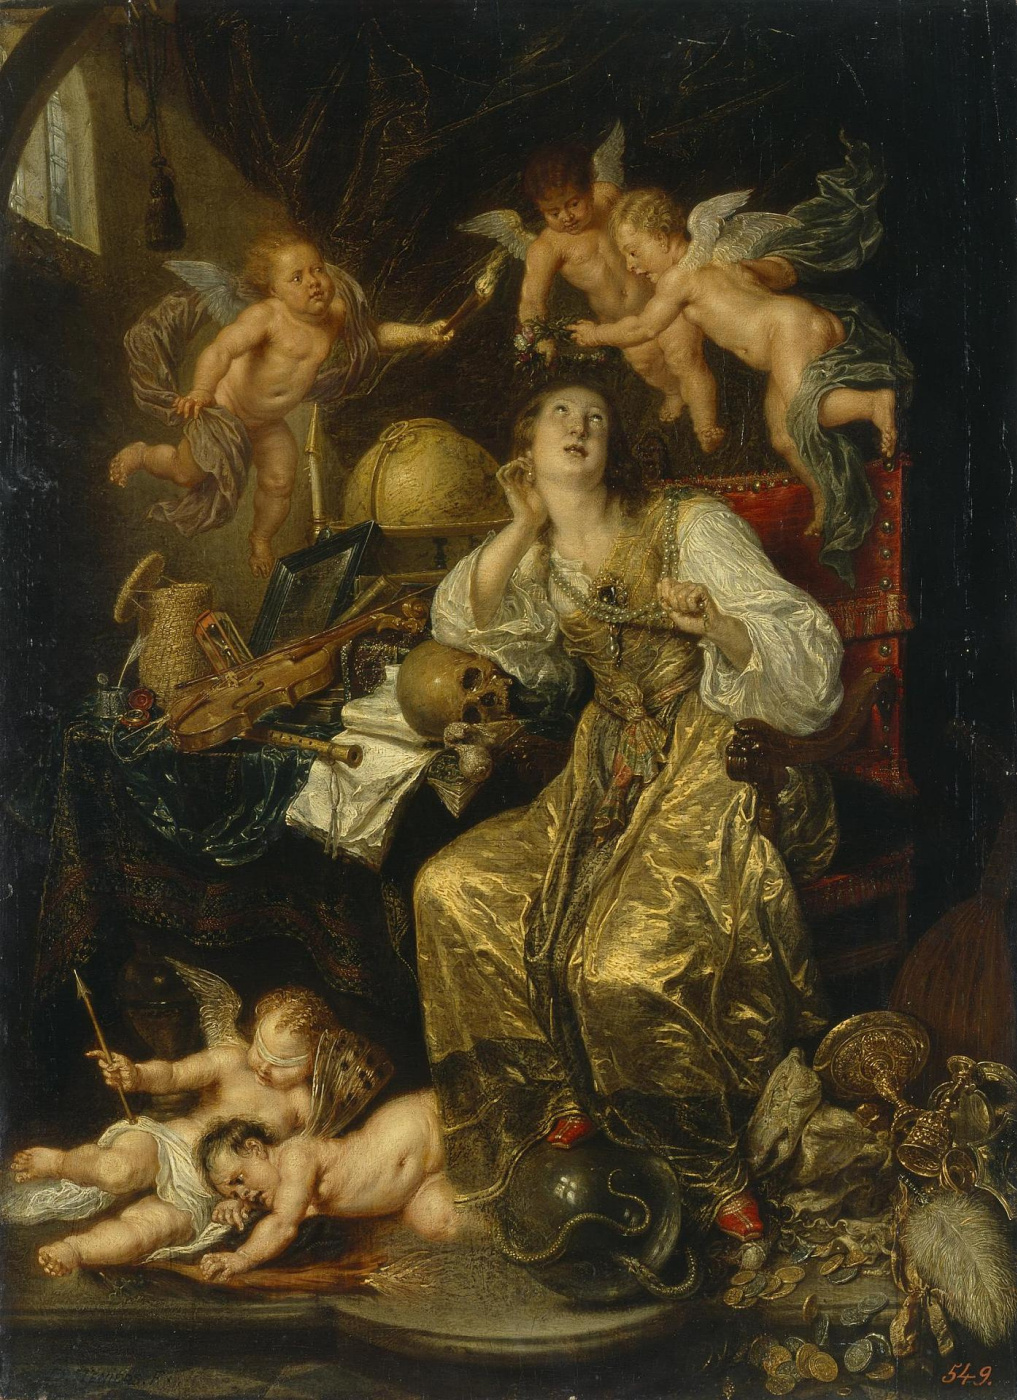 David Teniers the Younger. Allegory of Prudence overcoming the bustle of the earth (Allegory of Faith)